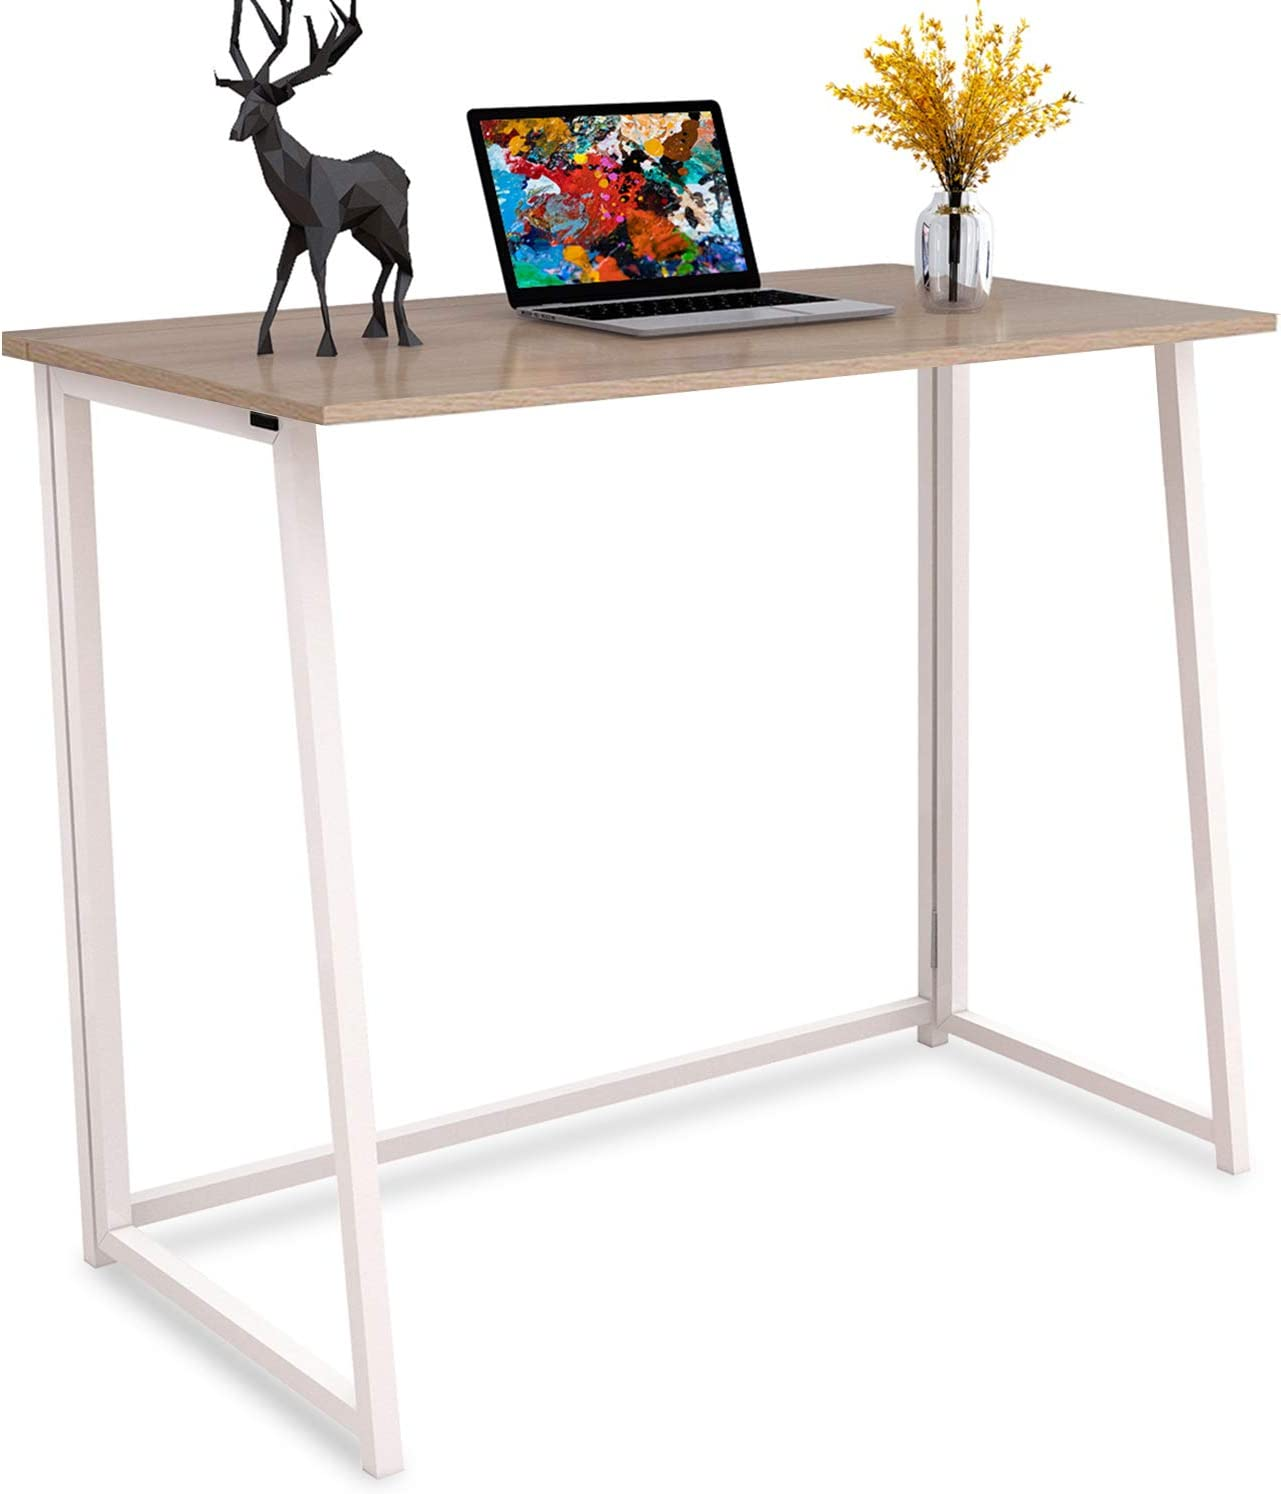 4NM Folding Desk, No-Assembly Small Computer Desk